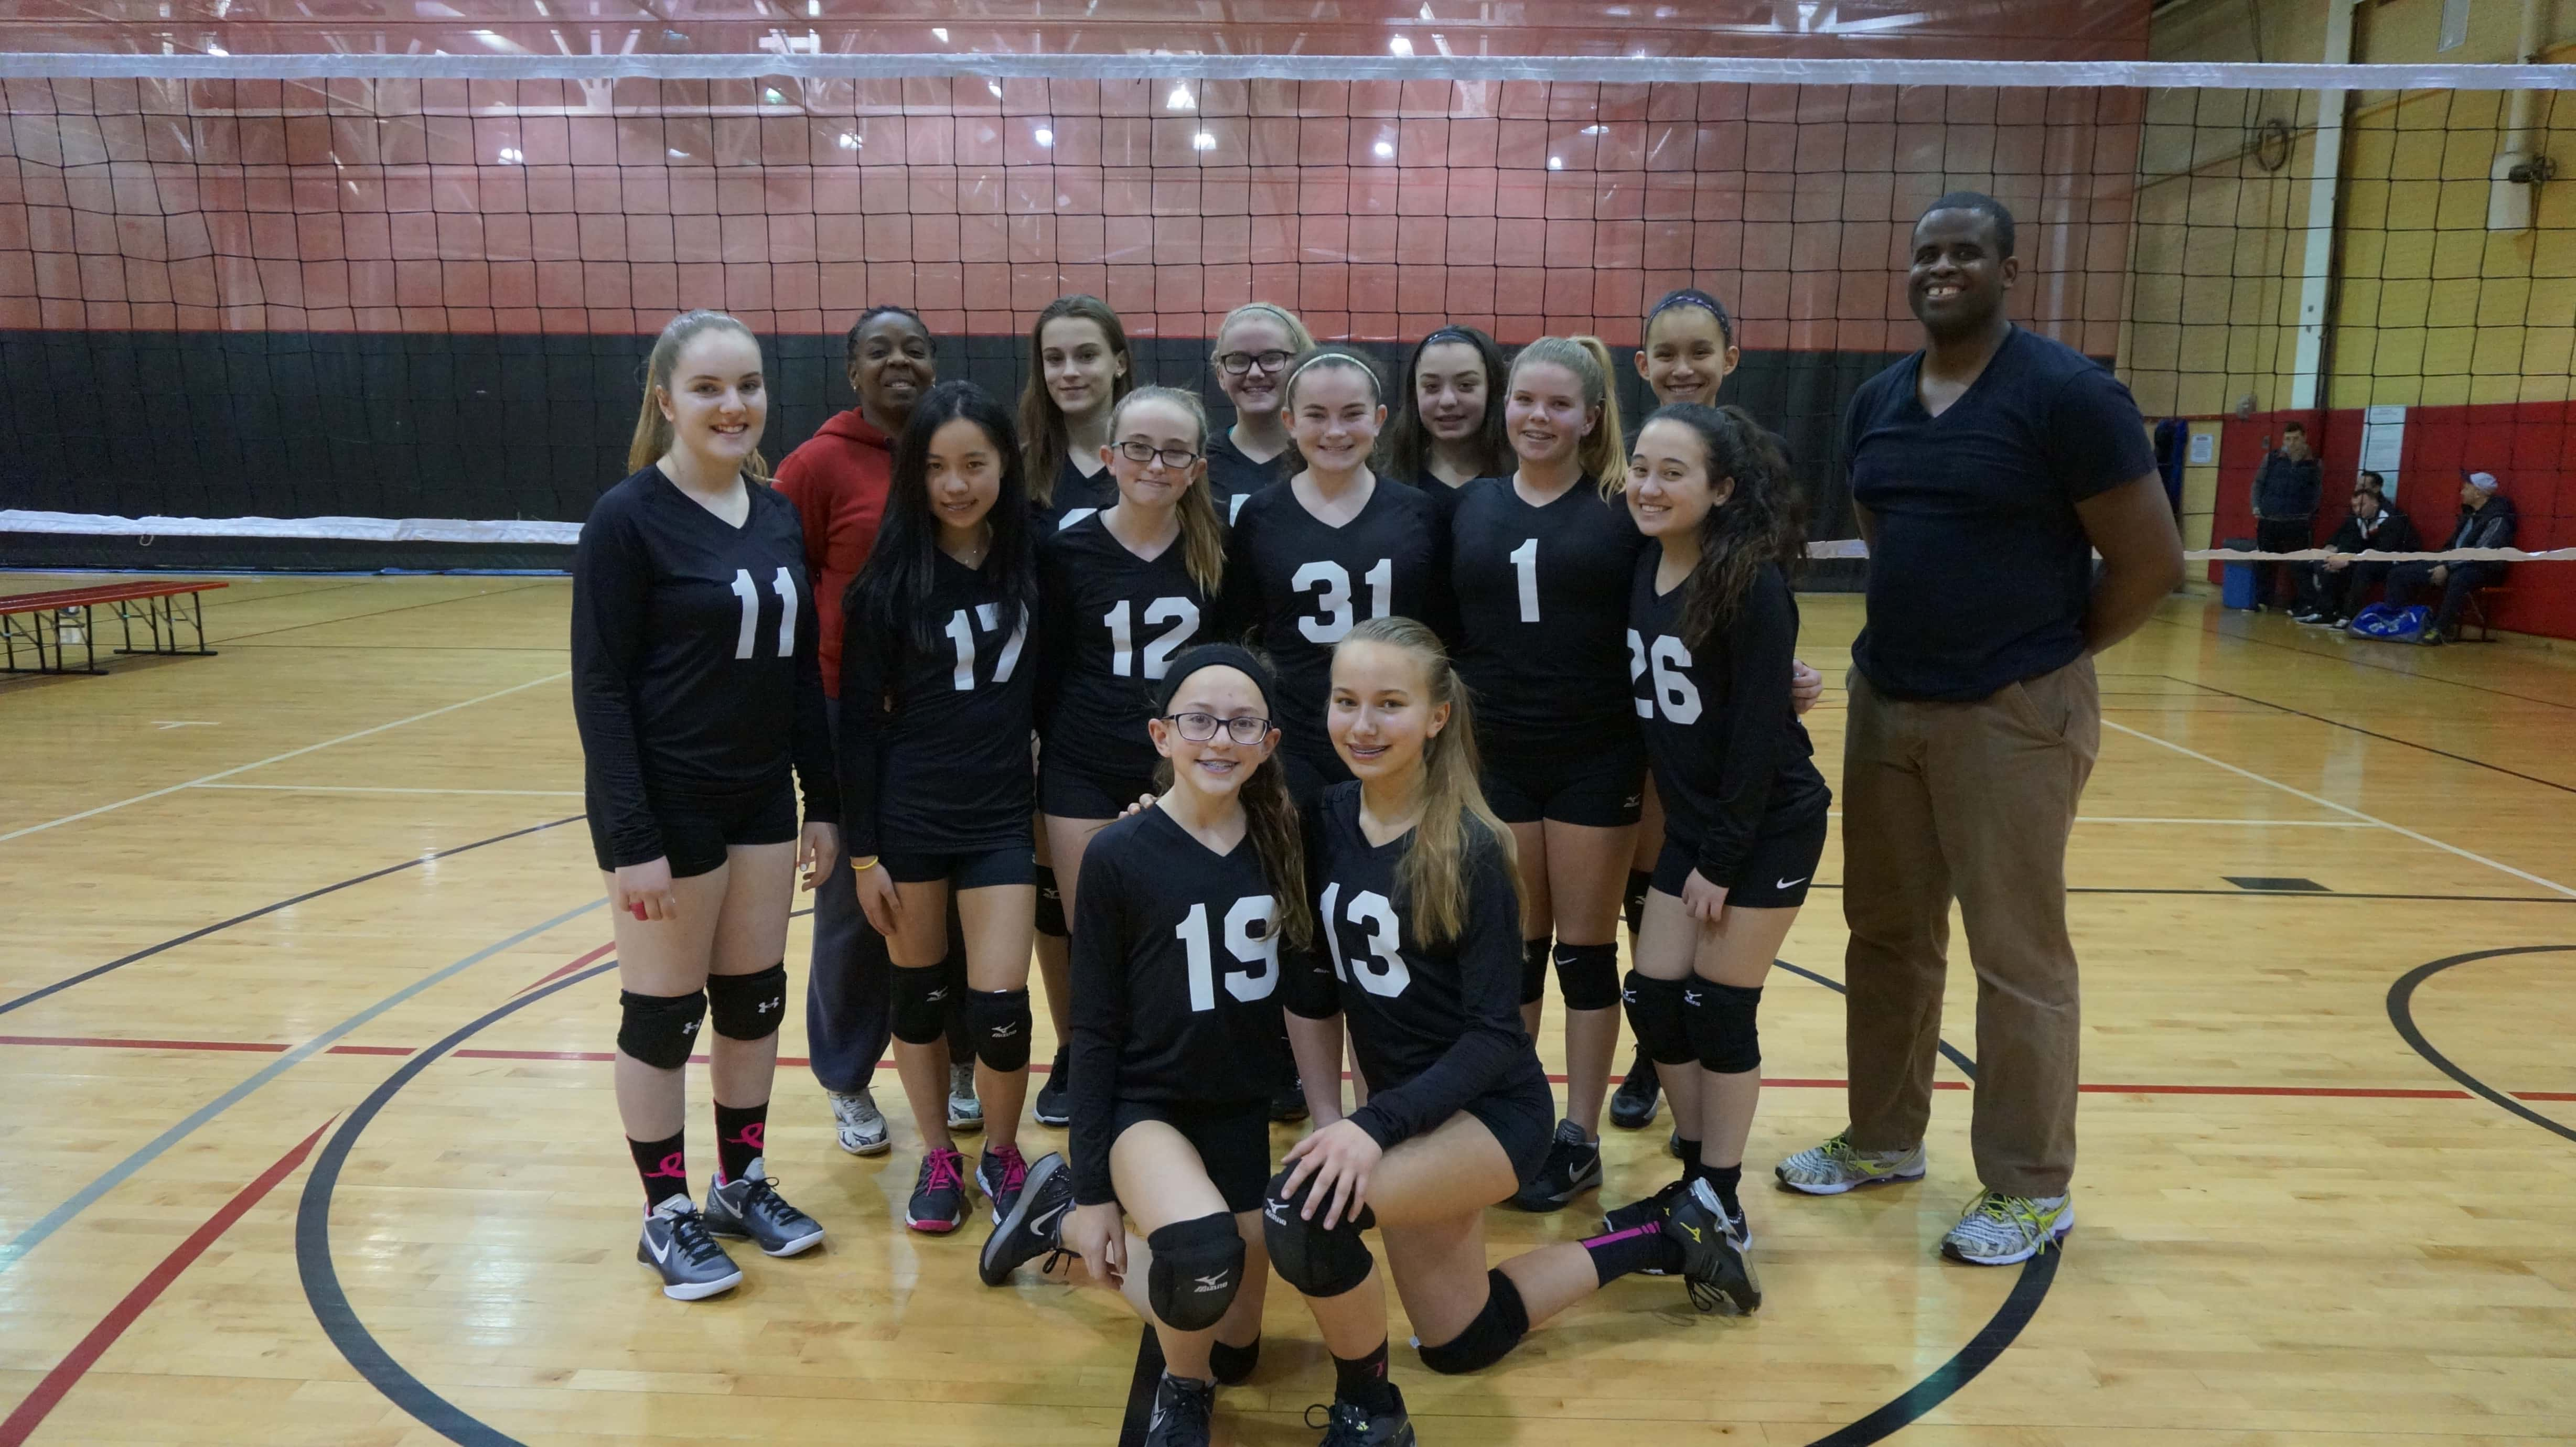 Volleyball Clinics Classes & Leagues | Aviator Sports